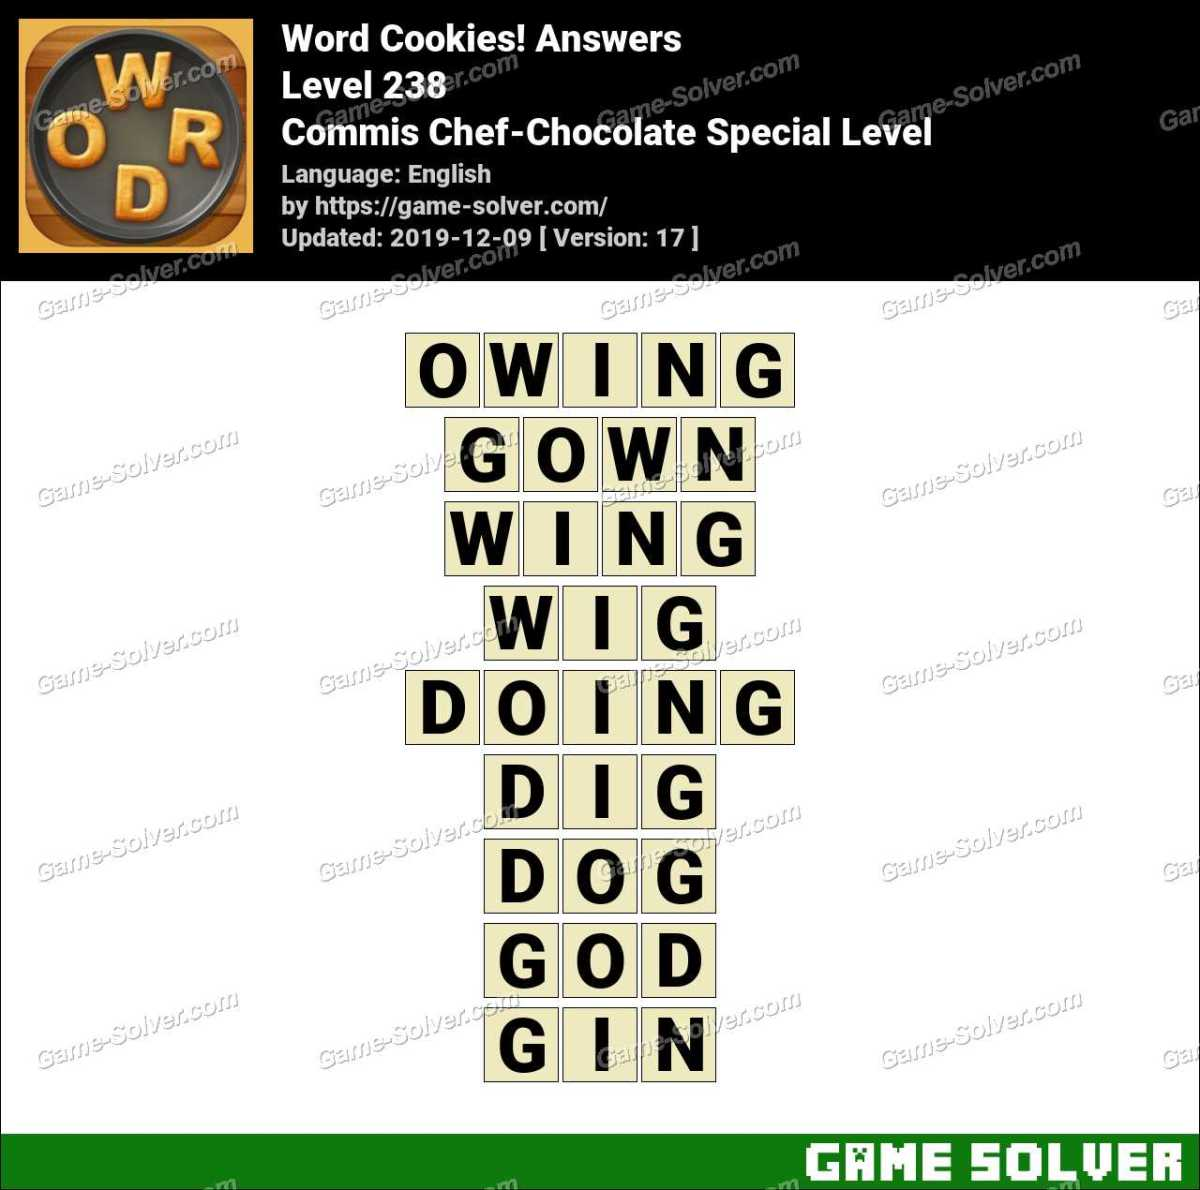 Word Cookies Commis Chef-Chocolate Special Level Answers